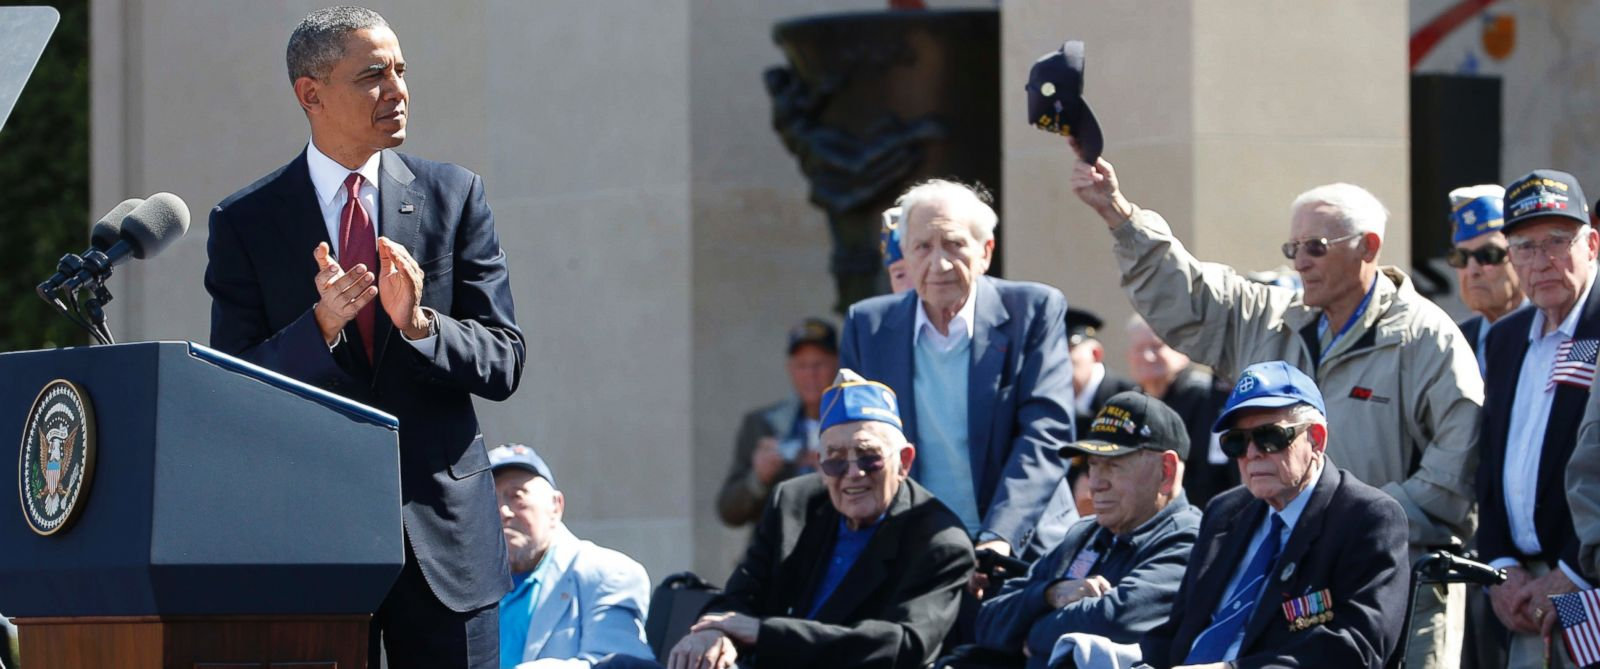 PHOTO: President Barack Obama acknowledges veterans as he speaks at Normandy American Cemetery at Omaha Beach as he participates in the 70th anniversary of D-Day in Colleville sur Mer in Normandy, France, June 6, 2014.